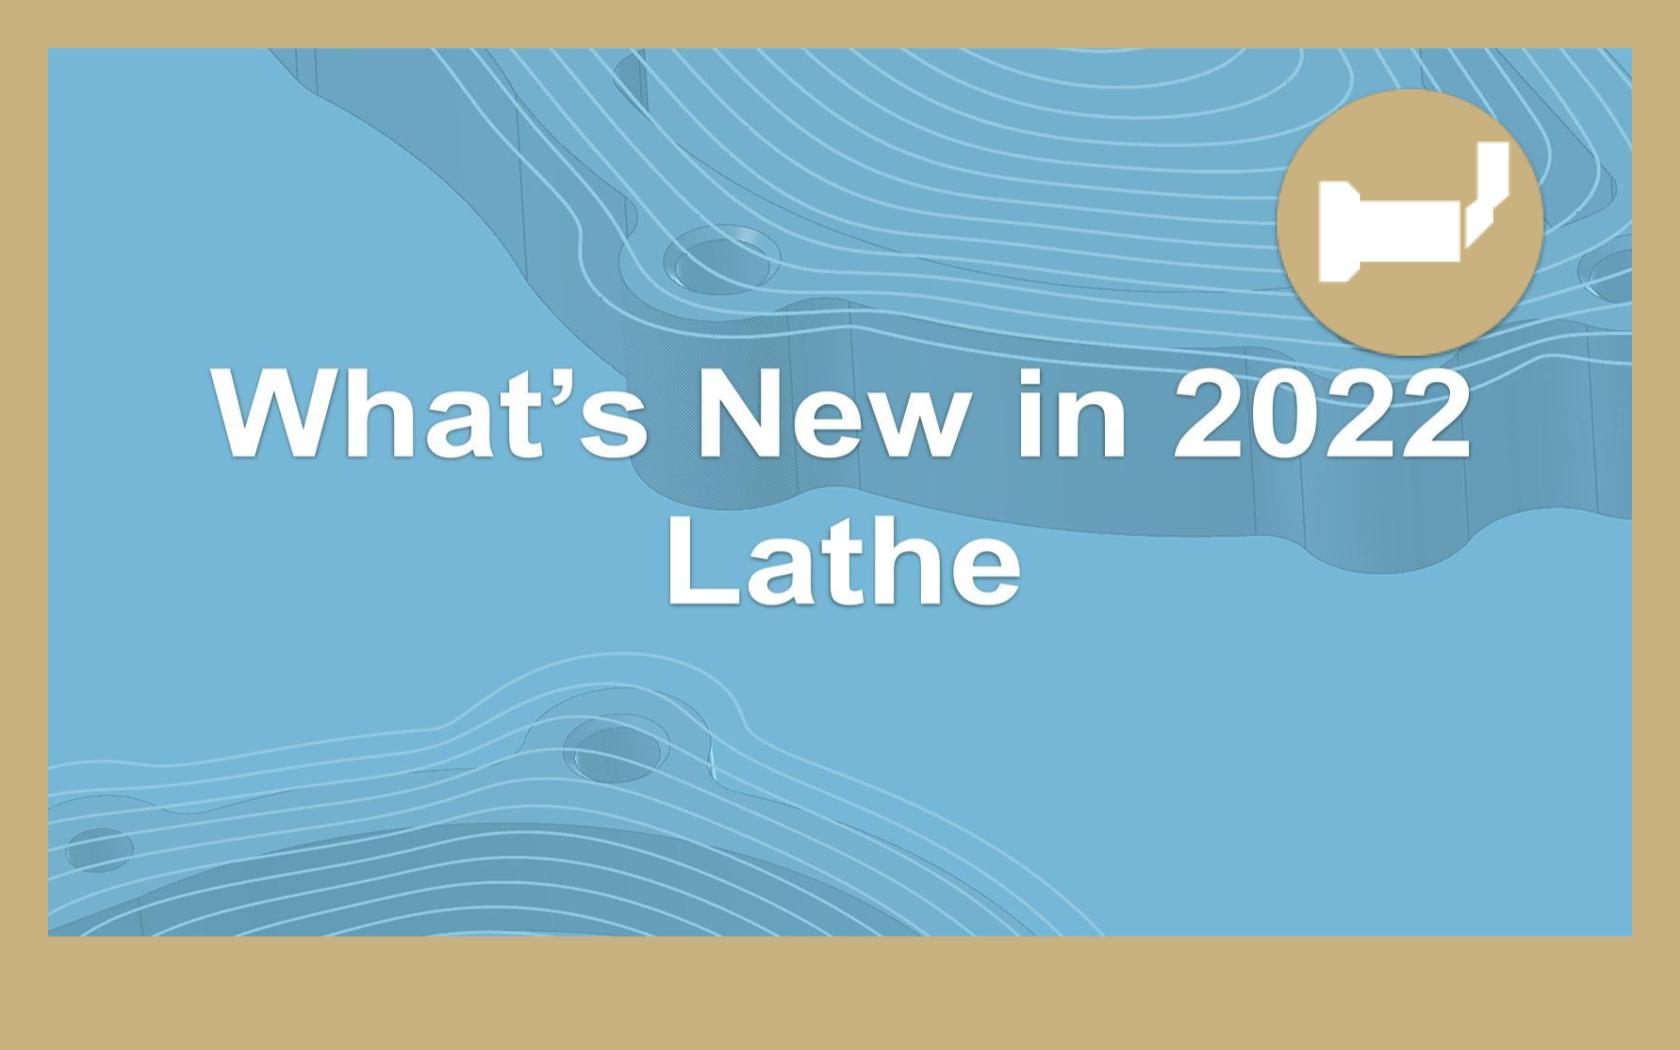 What's New in 2022 - Lathe